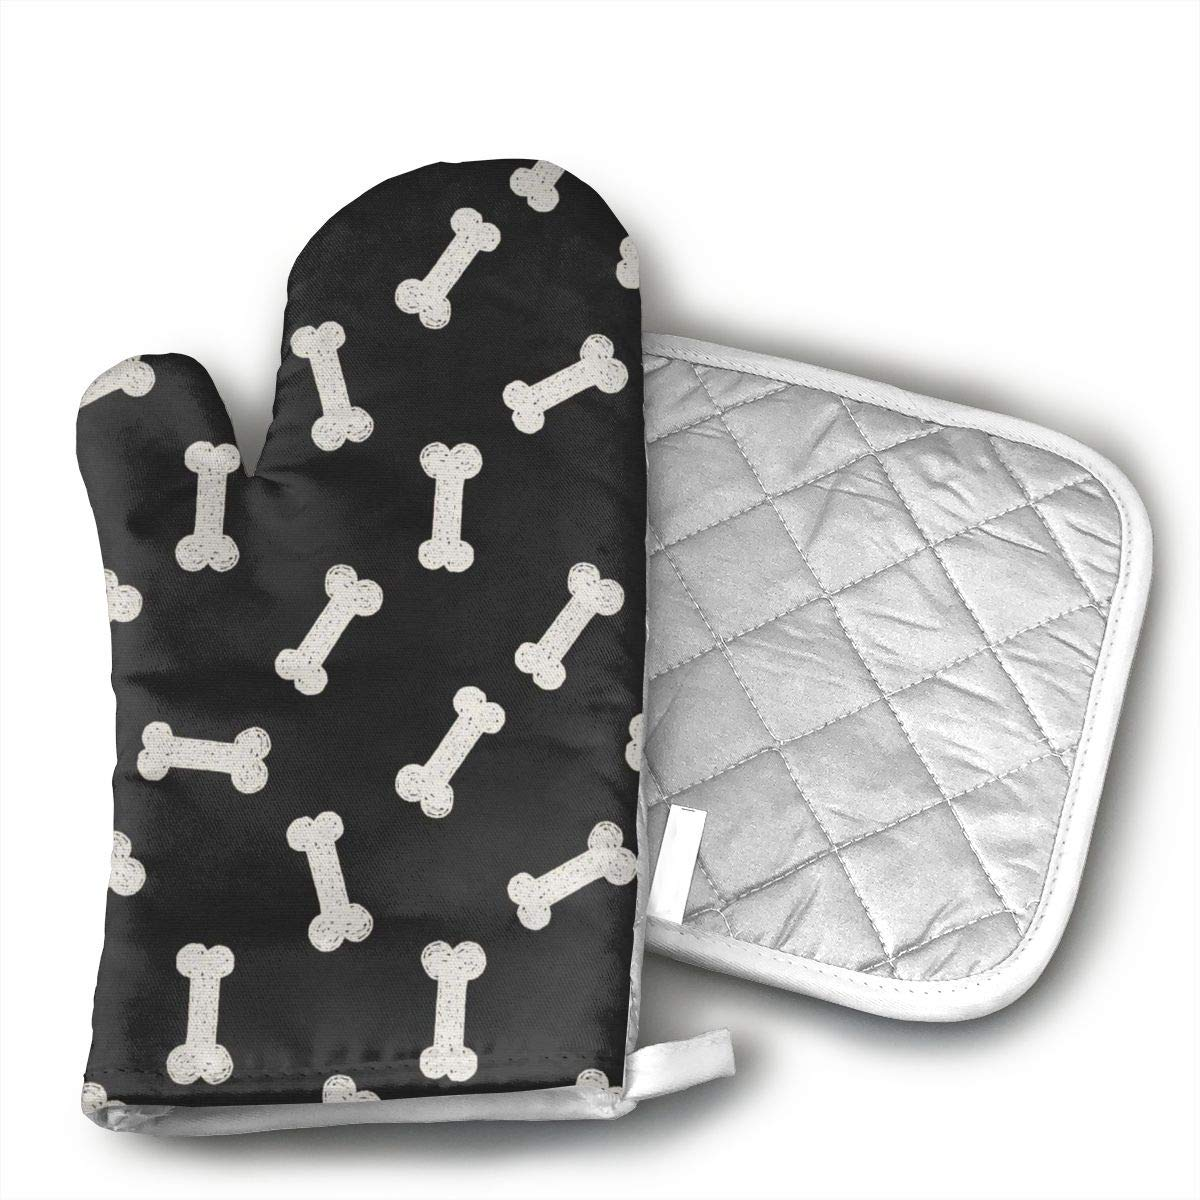 EROJfj Doodle Dog Bone Canine Animal Theme Oven Mitts and Potholders BBQ Gloves-Oven Mitts and Pot Holders Non-Slip Cooking Gloves for Cooking Baking Grilling